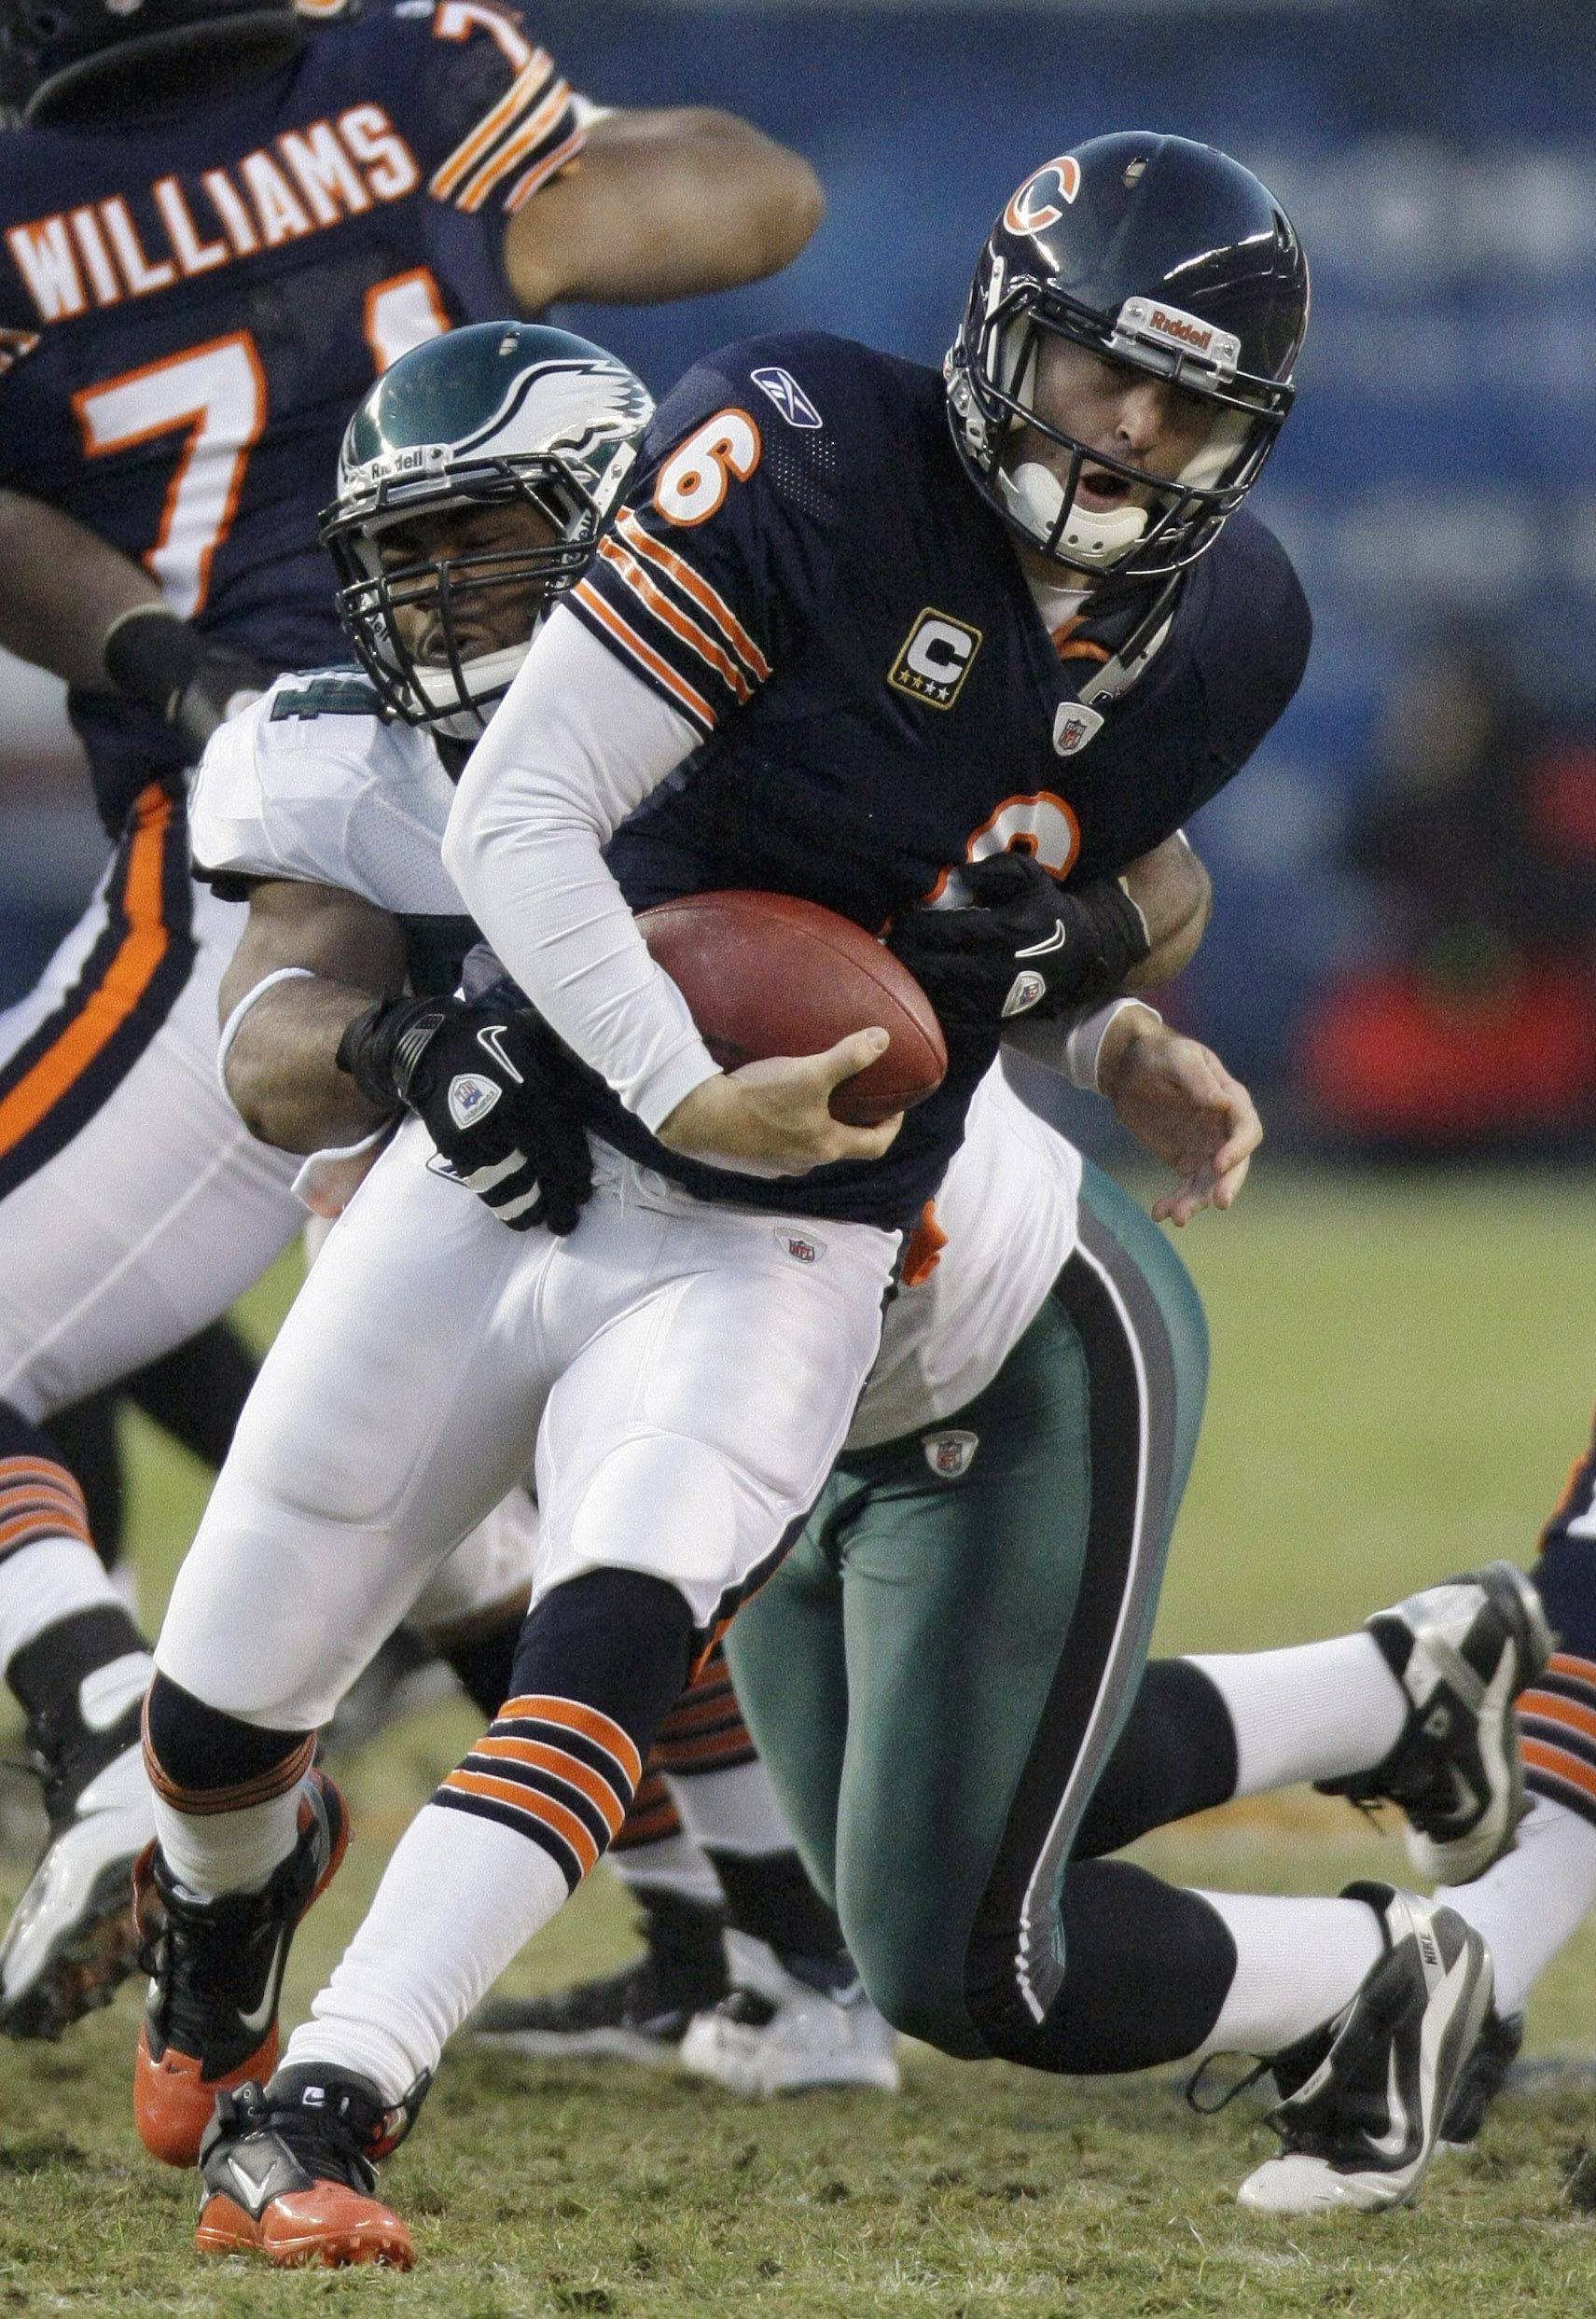 Chicago Bears quarterback Jay Cutler is sacked by Philadelphia Eagles defensive end Brandon Graham in the first half.